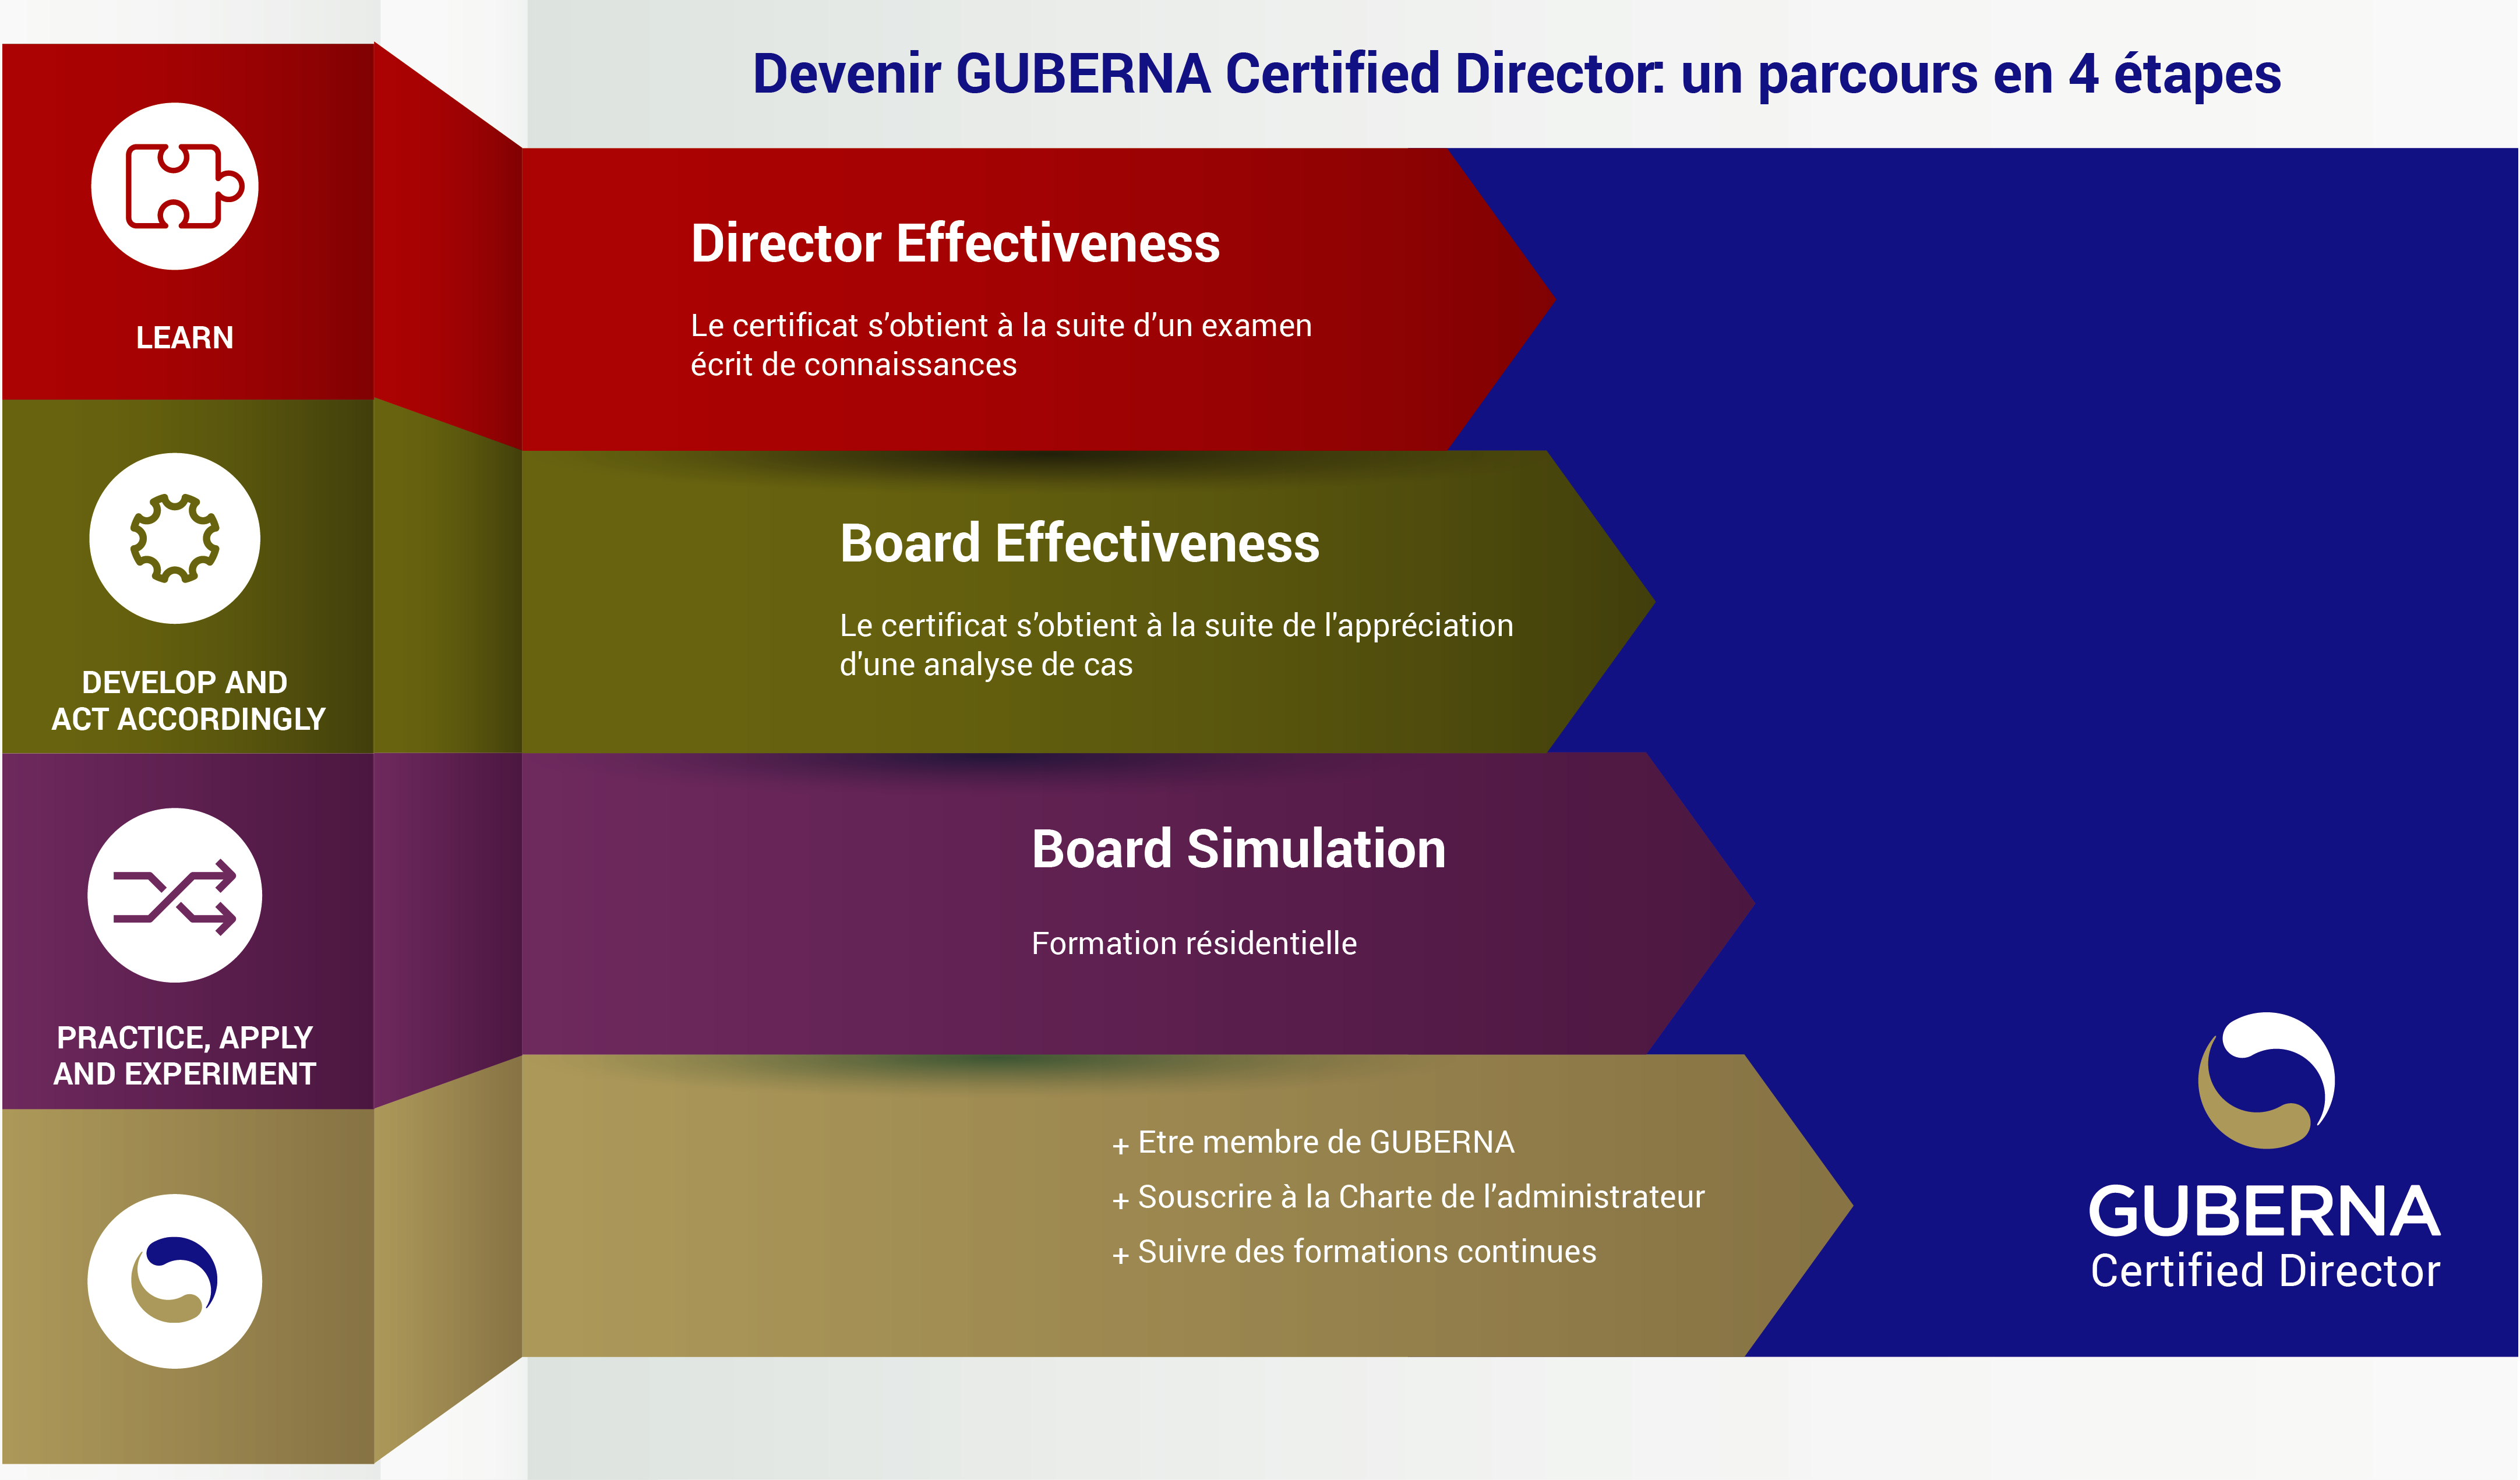 GUBERNA Certified Director in 4 steps